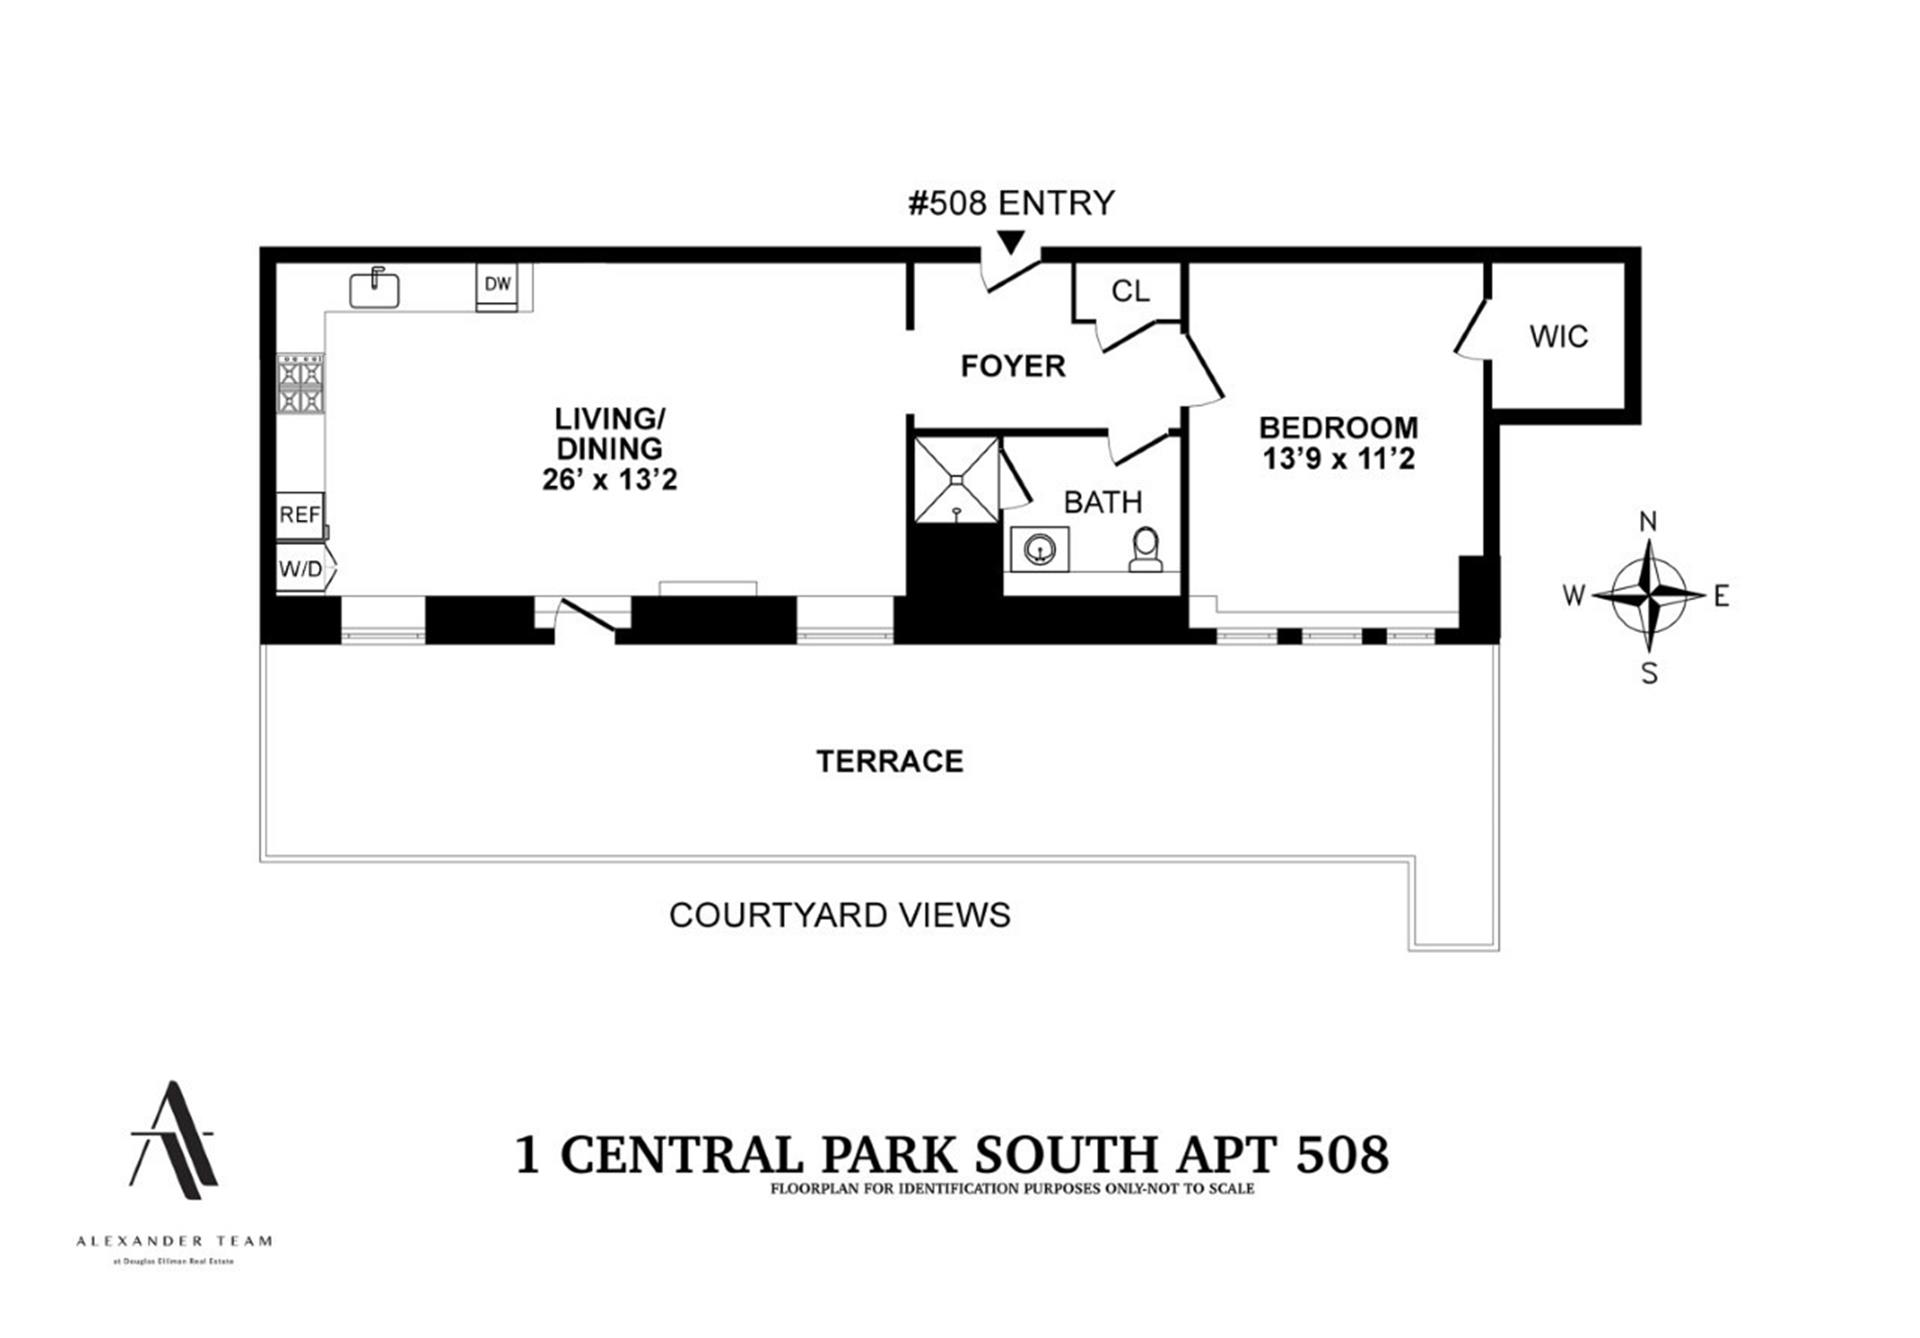 Floor plan of The Plaza Residences, 1 Central Park South, 508 - Central Park South, New York